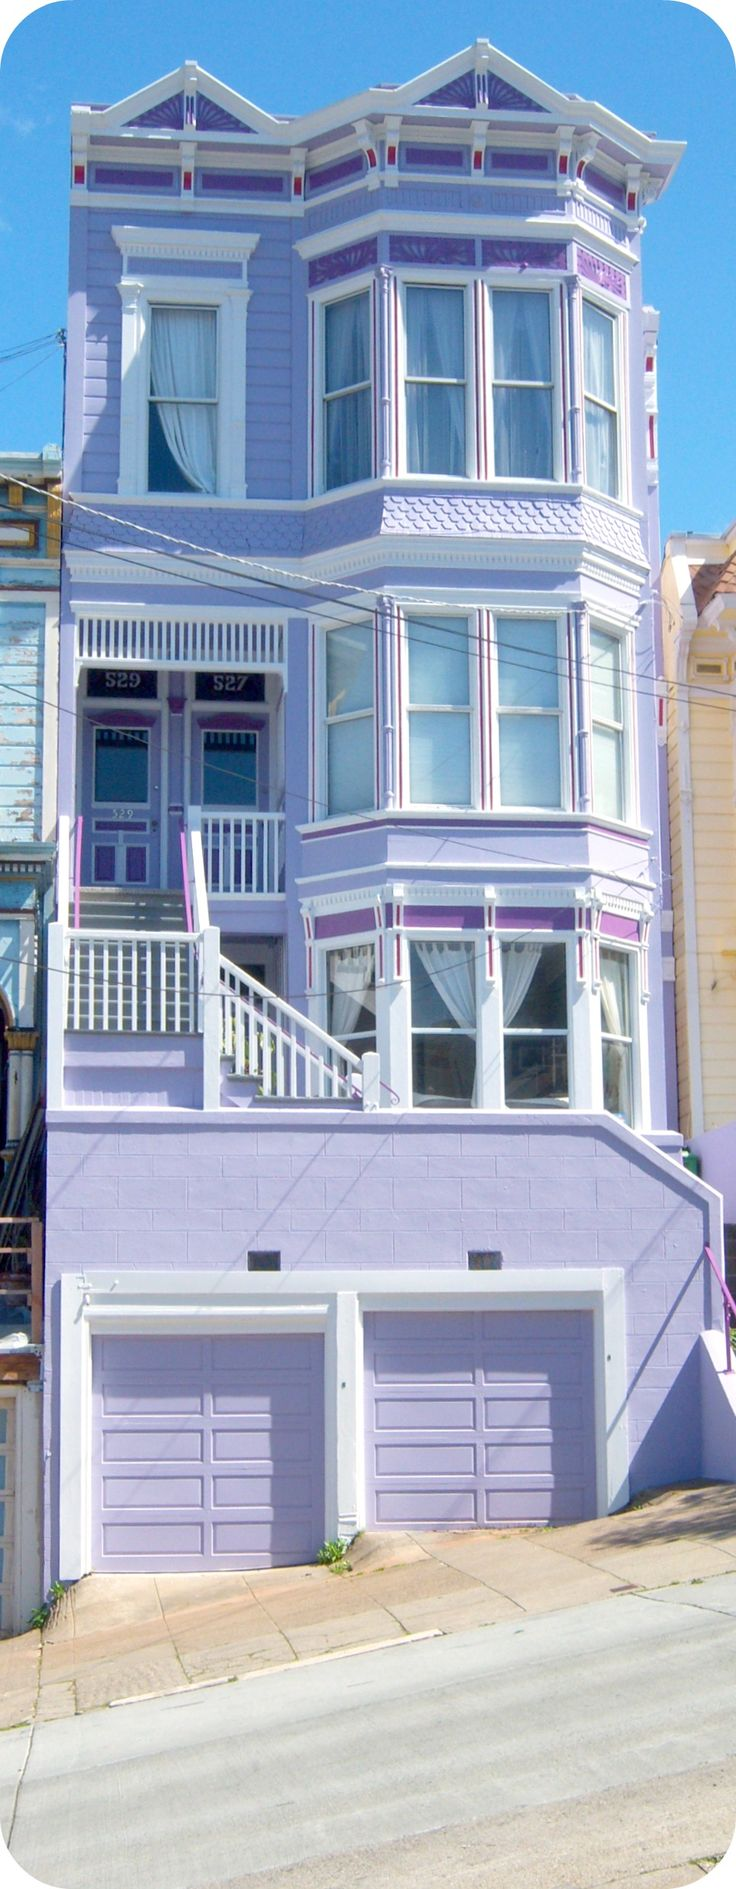 Beautiful San Francisco Home. Mighty purple hill